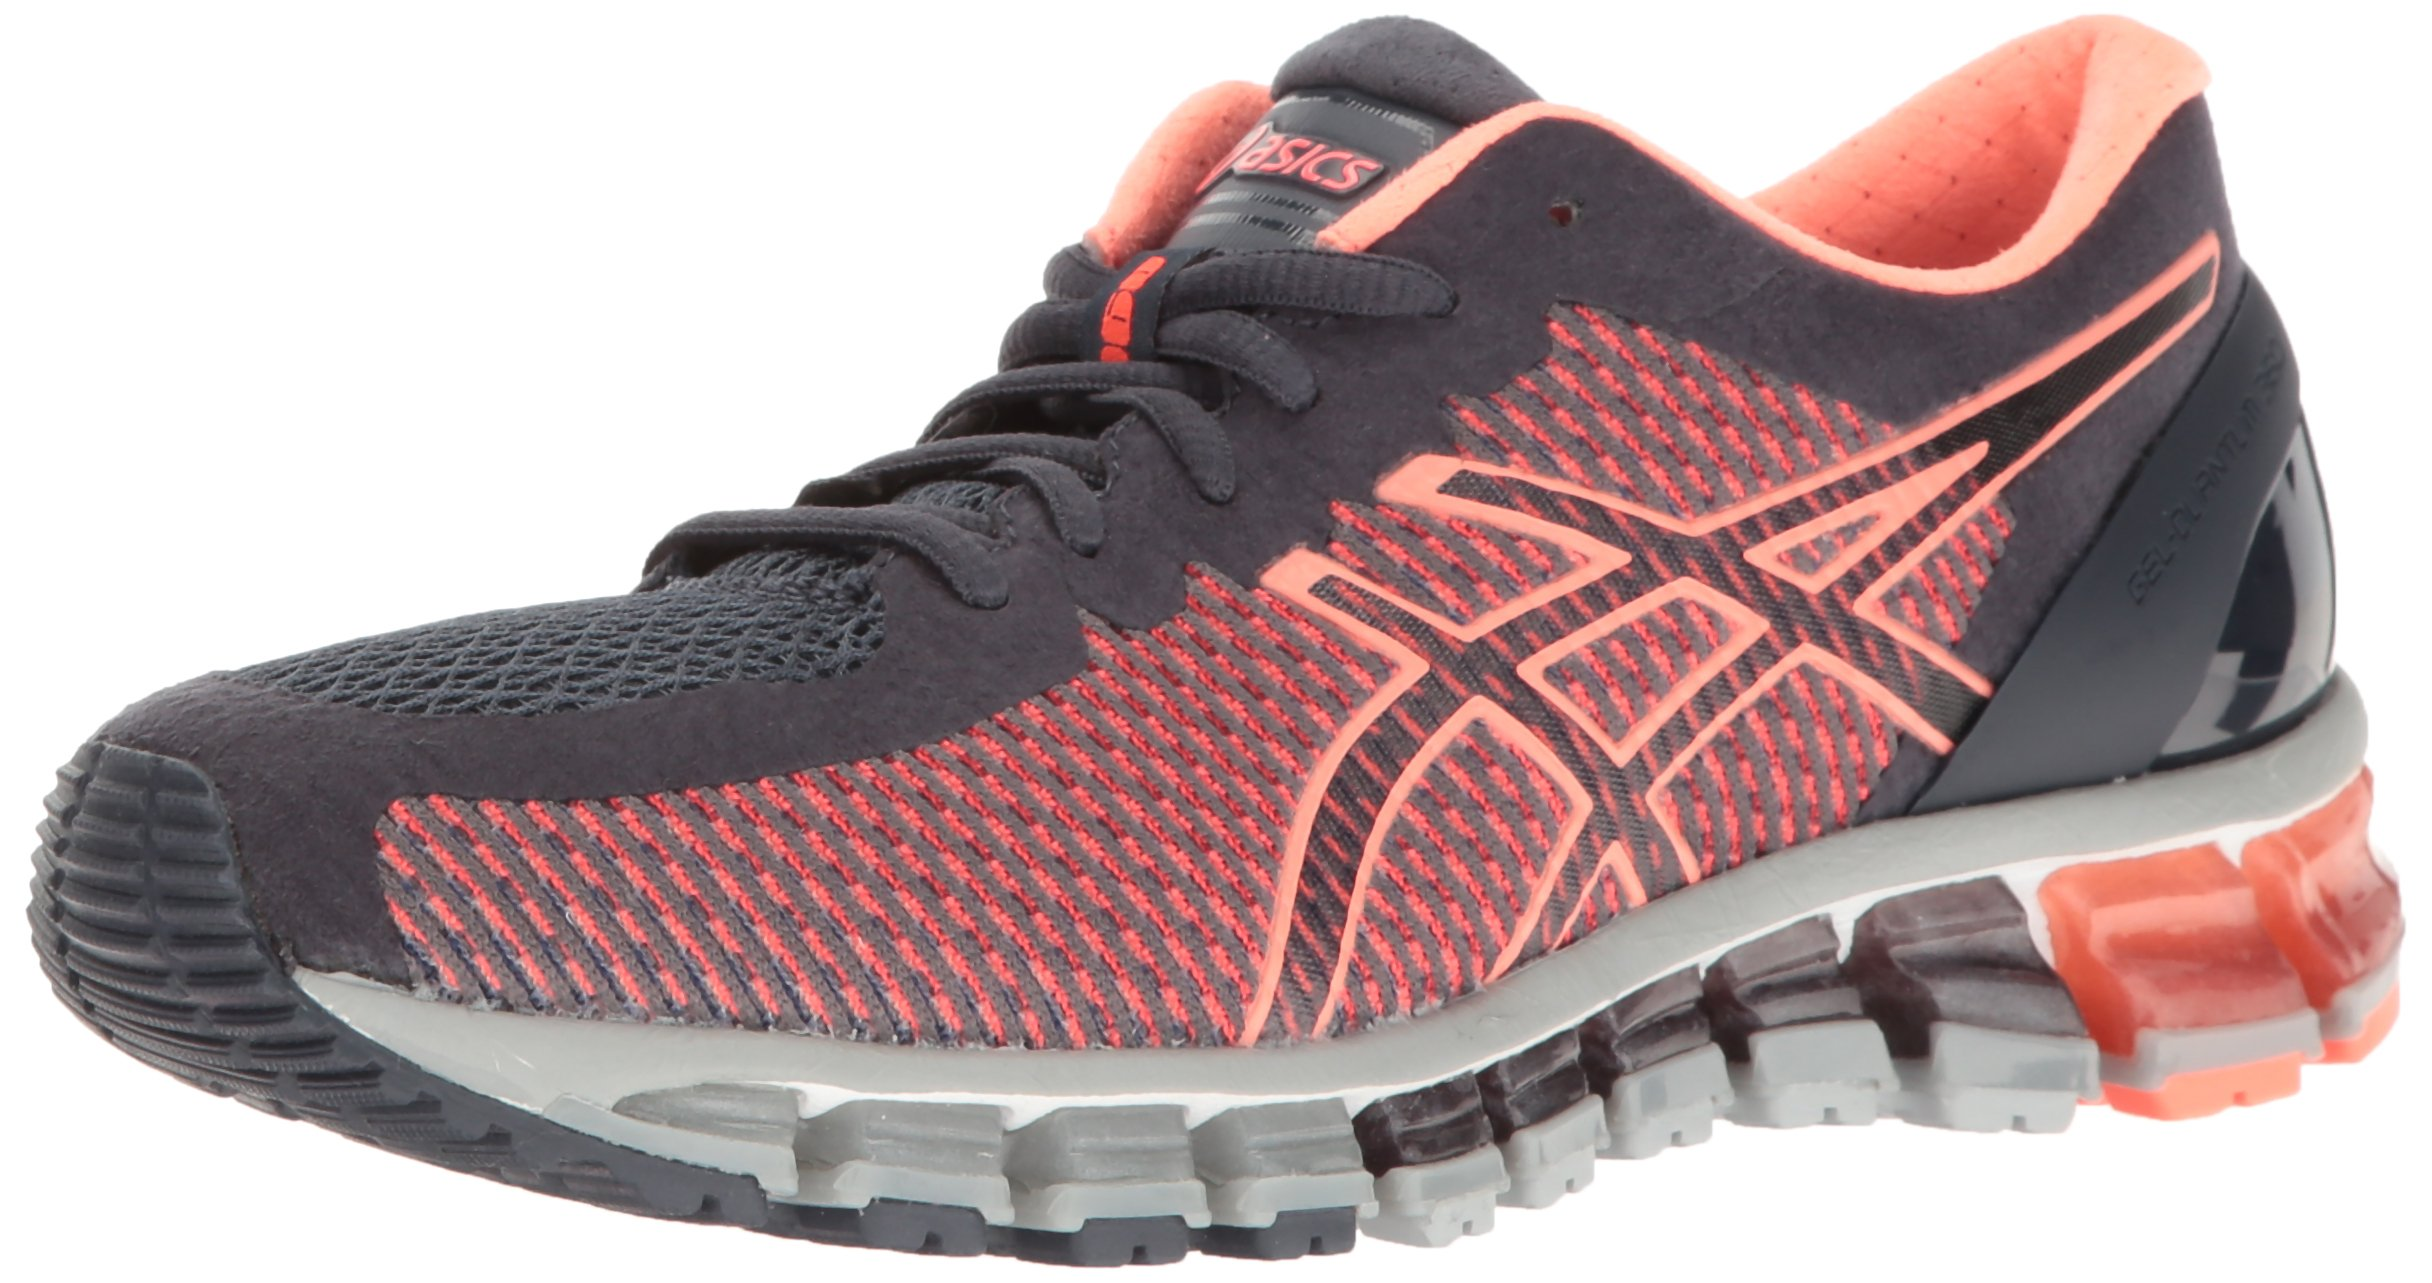 ASICS Women's Gel-Quantum 360 cm Running Shoe, India Ink/Flash Coral/Mid Grey, 9 M US by ASICS (Image #1)